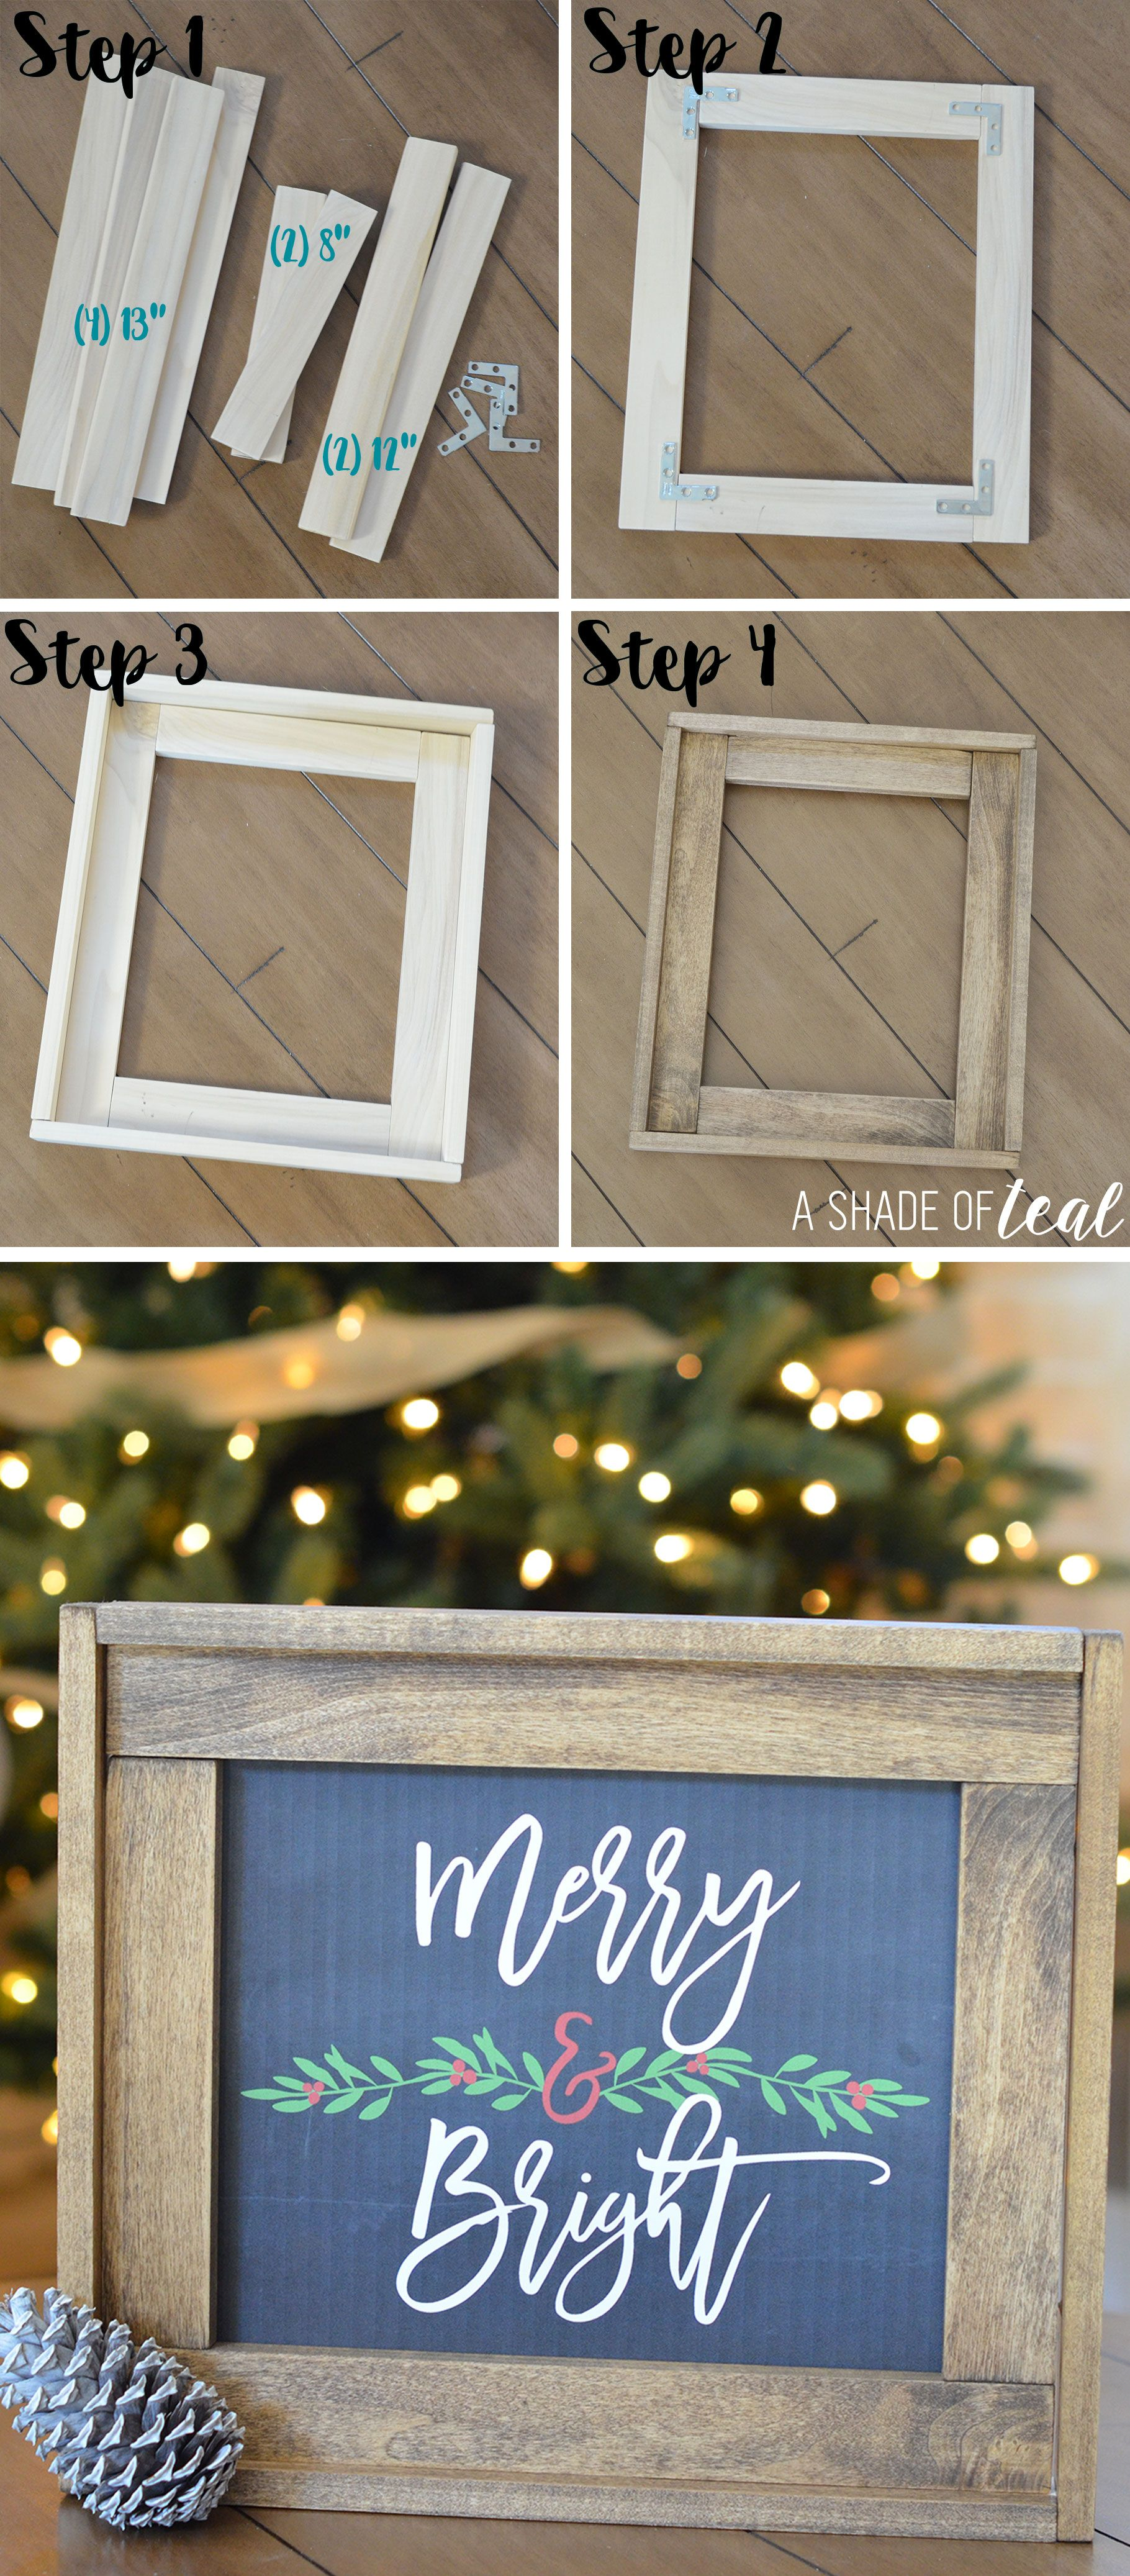 Christmas Mantle Update, How to make a Rustic Wood Frame